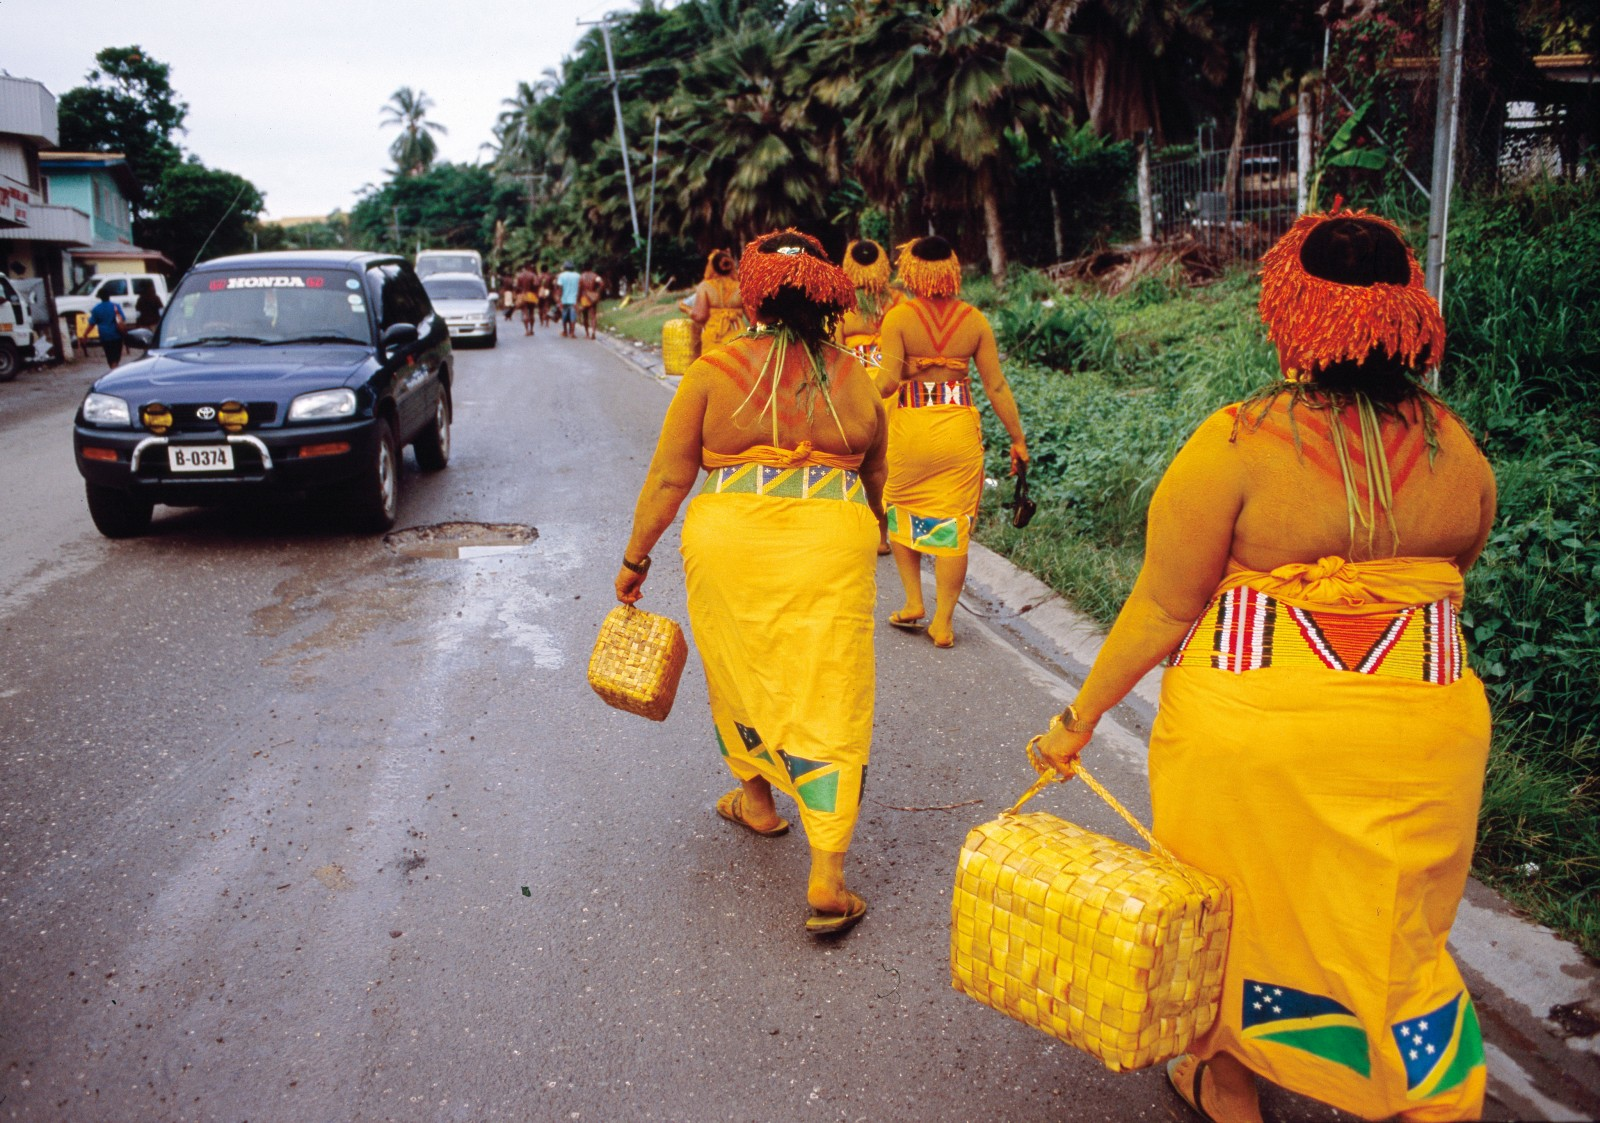 The women of Ontong Java atoll hasten to the closing ceremony of the festival. The atoll is part of the Melanesian Solomon Islands but considered Polynesian by culture. However, their troupe, pictured here with pungent turmeric smeared onto costumes and limbs, performs with vocals and dance forms that contrast with those of both Pacific regions. How such enormous cultural and linguistic diversity can exist, despite relatively frequent contact with other islands, remains the focus of research by the many anthropologists and historians interested in the Pacific region.